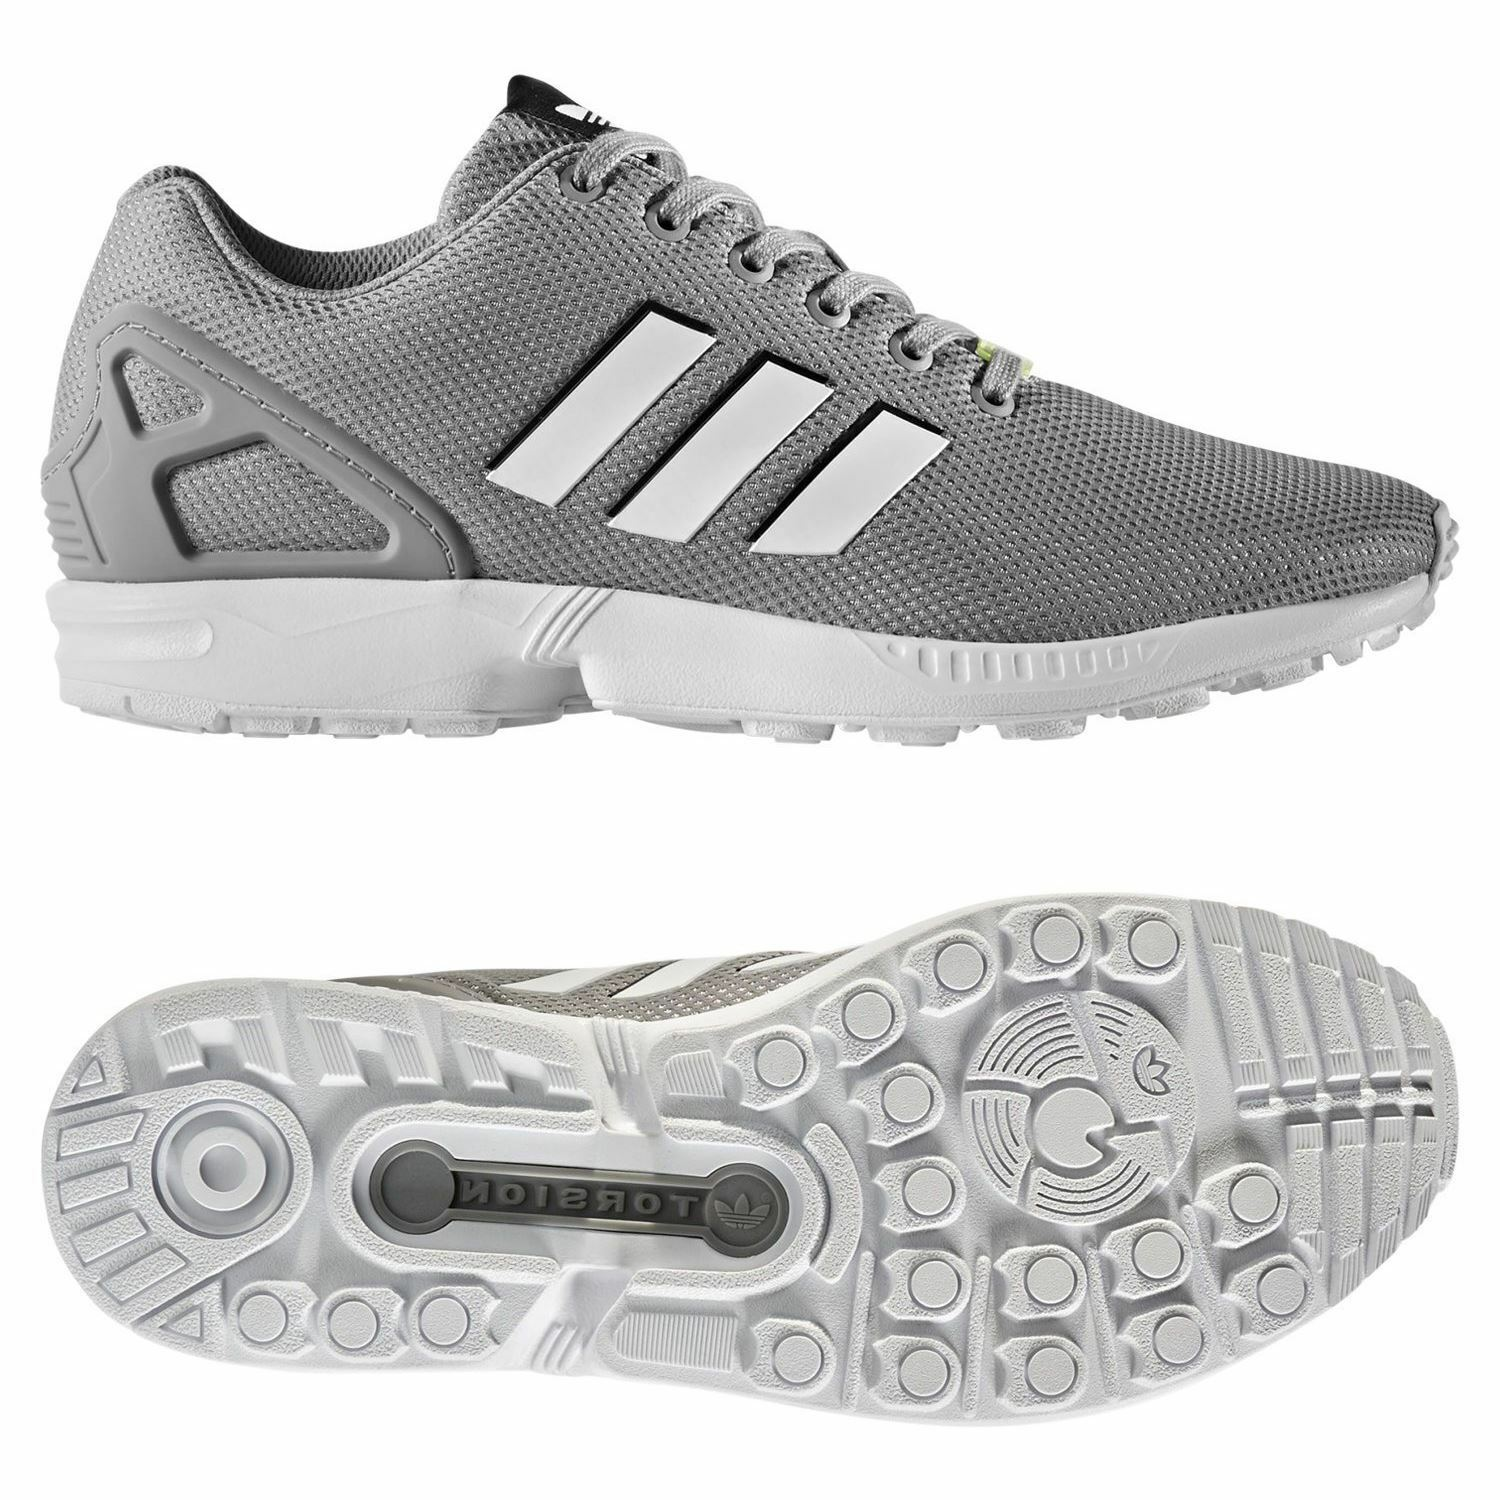 Adidas ORIGINALS MEN'S ZX FLUX RUNNING TRAINERS TRAINERS RUNNING GREY TREFOIL FITNESS GYM RUN NEW dfbe54